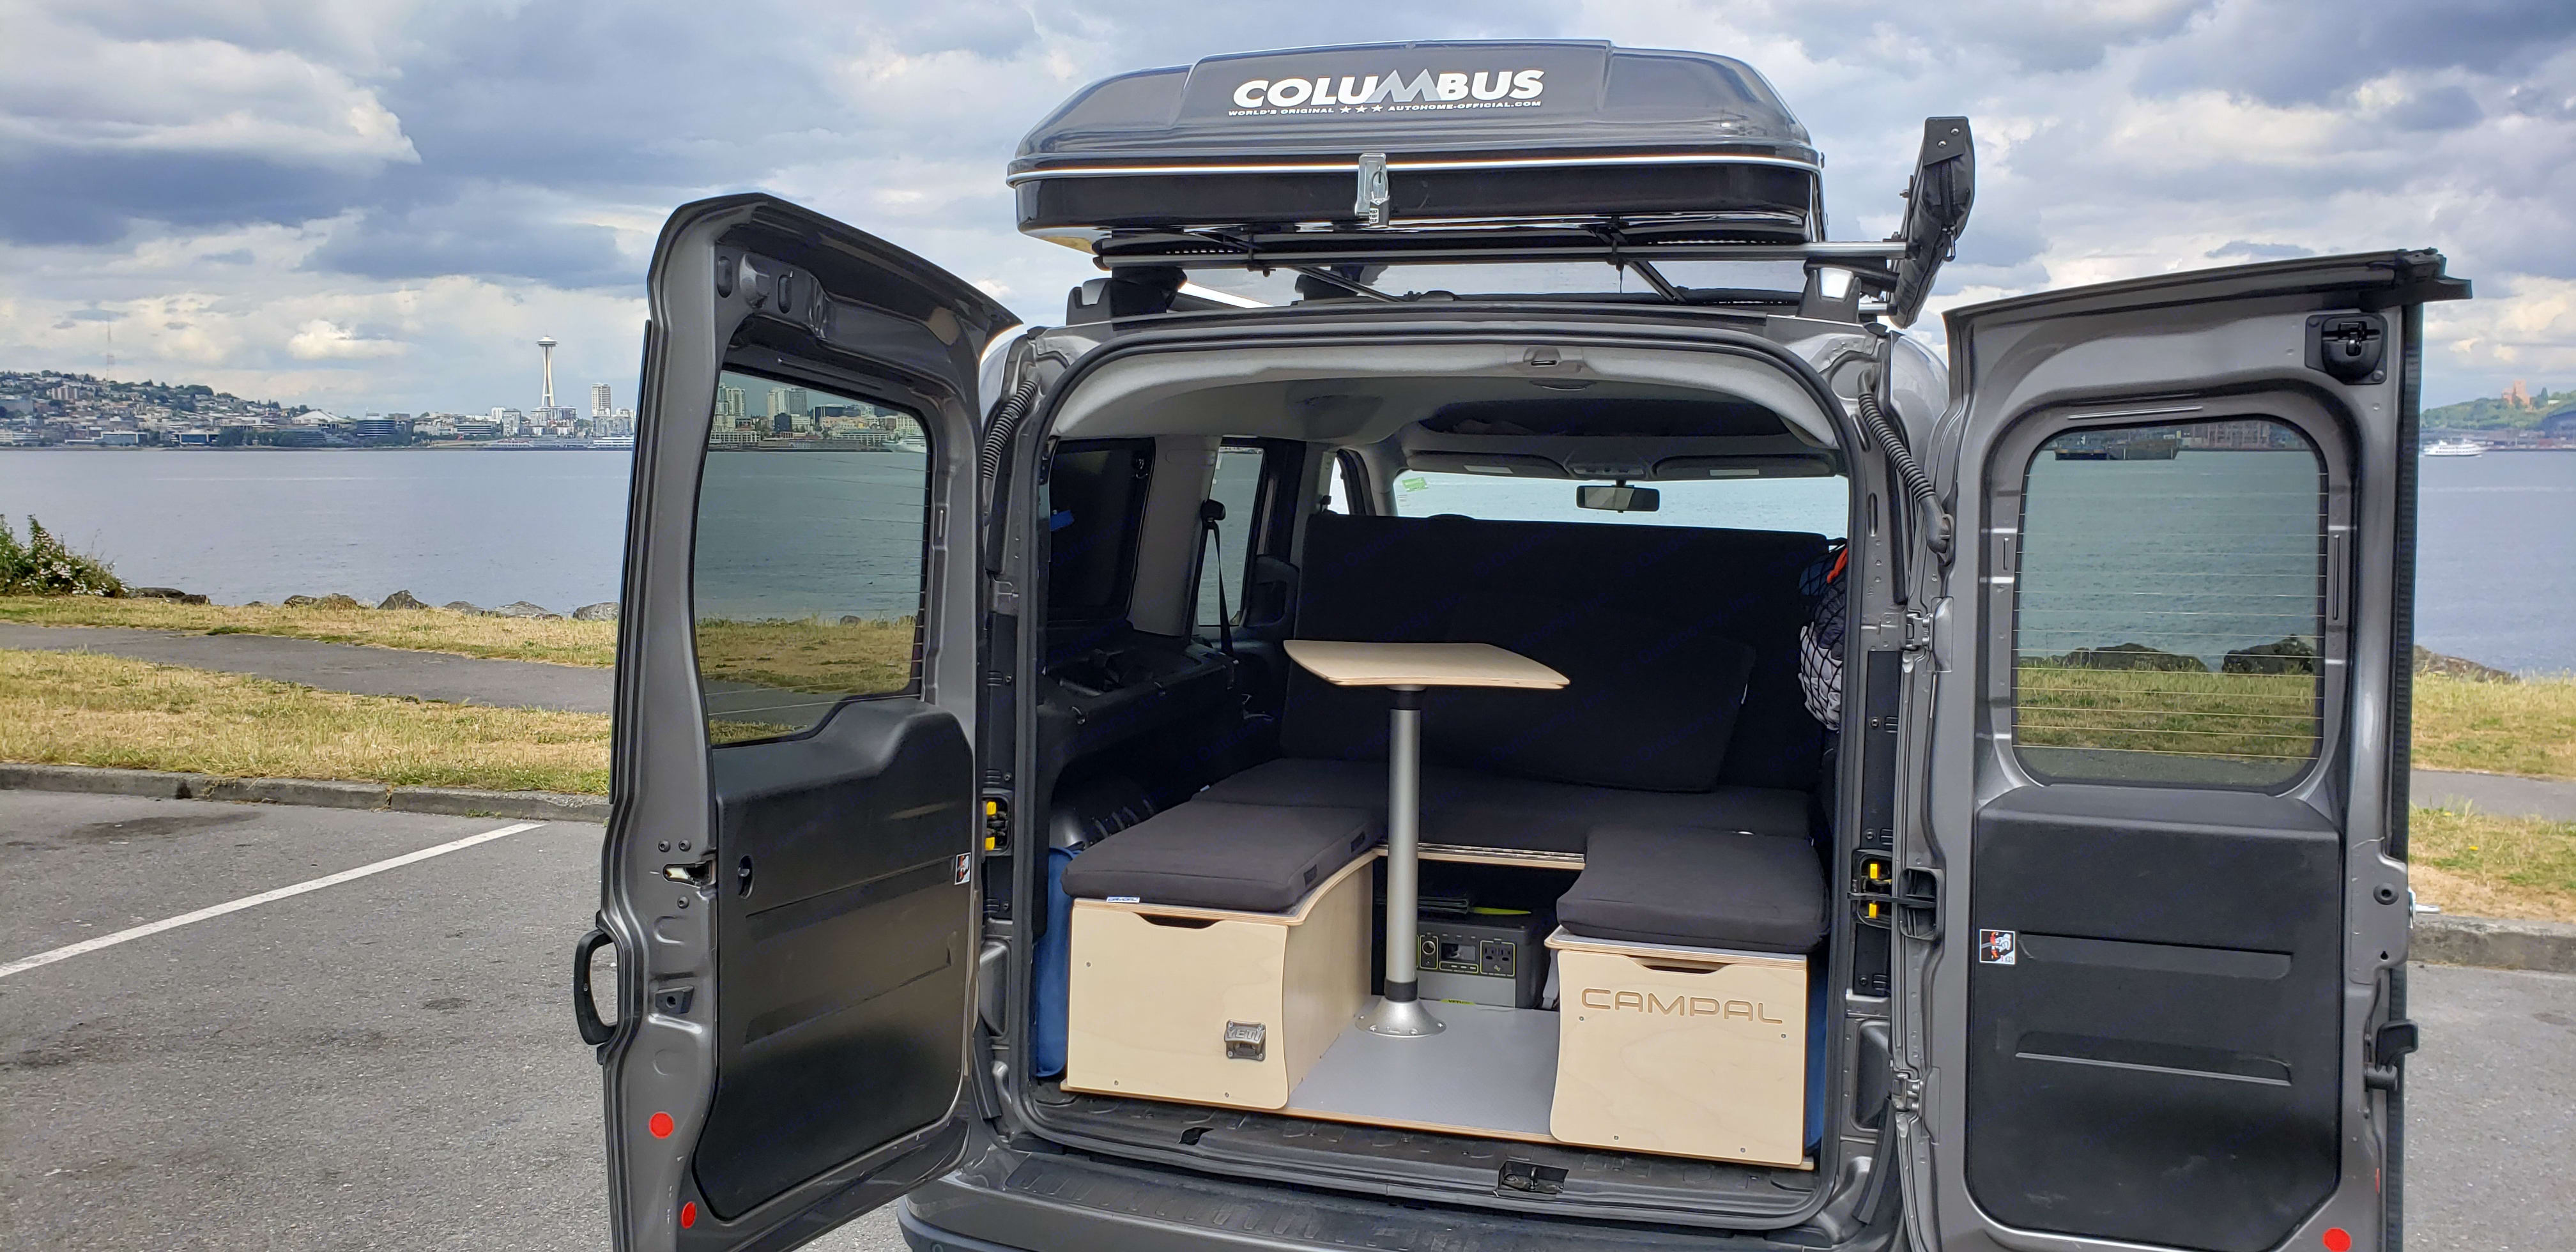 New update photo with Campal camper box. Dodge ProMaster City 2017